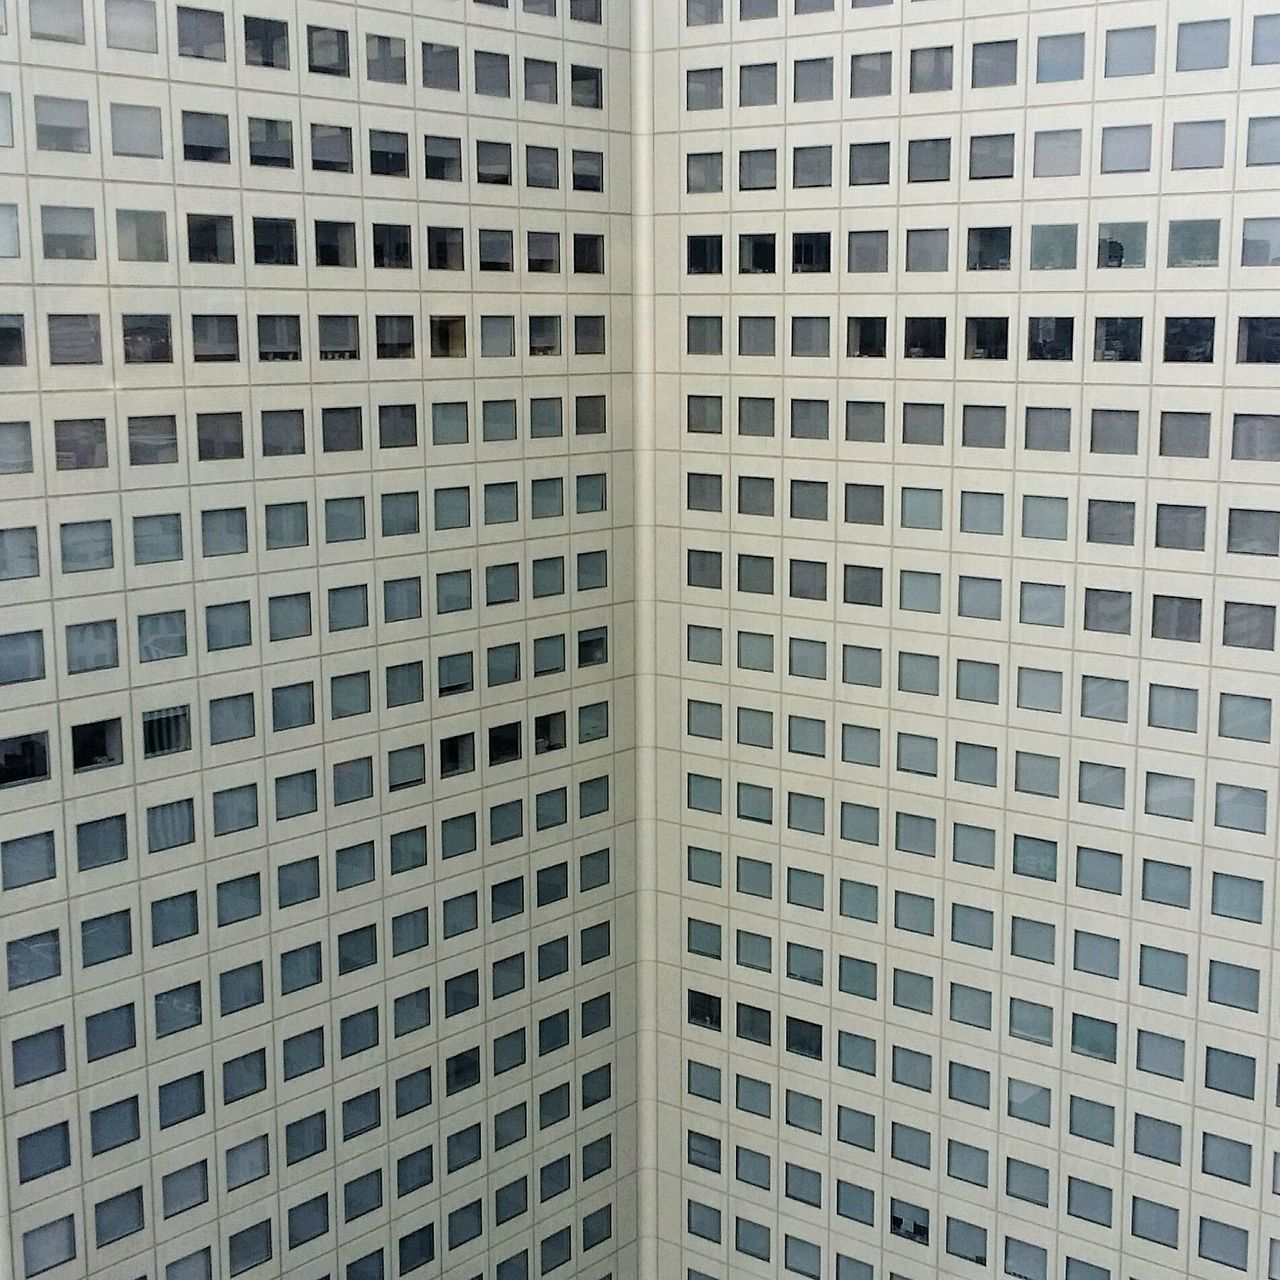 full frame, backgrounds, window, architecture, day, pattern, no people, building exterior, built structure, indoors, close-up